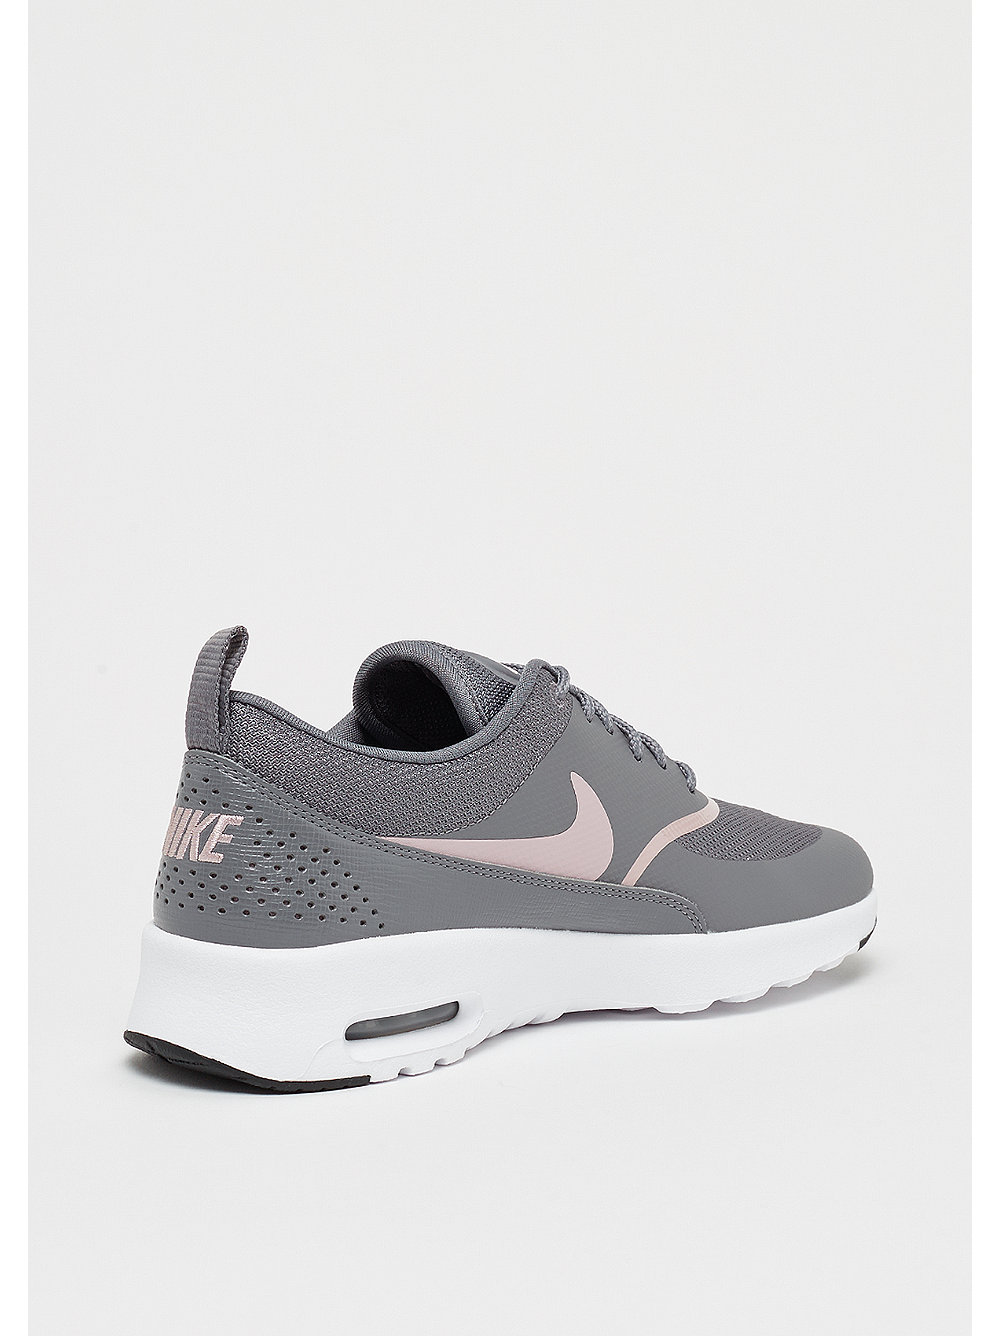 new product 0bd70 cf458 NIKE Wmns Air Max Thea gunsmoke particle rose-black